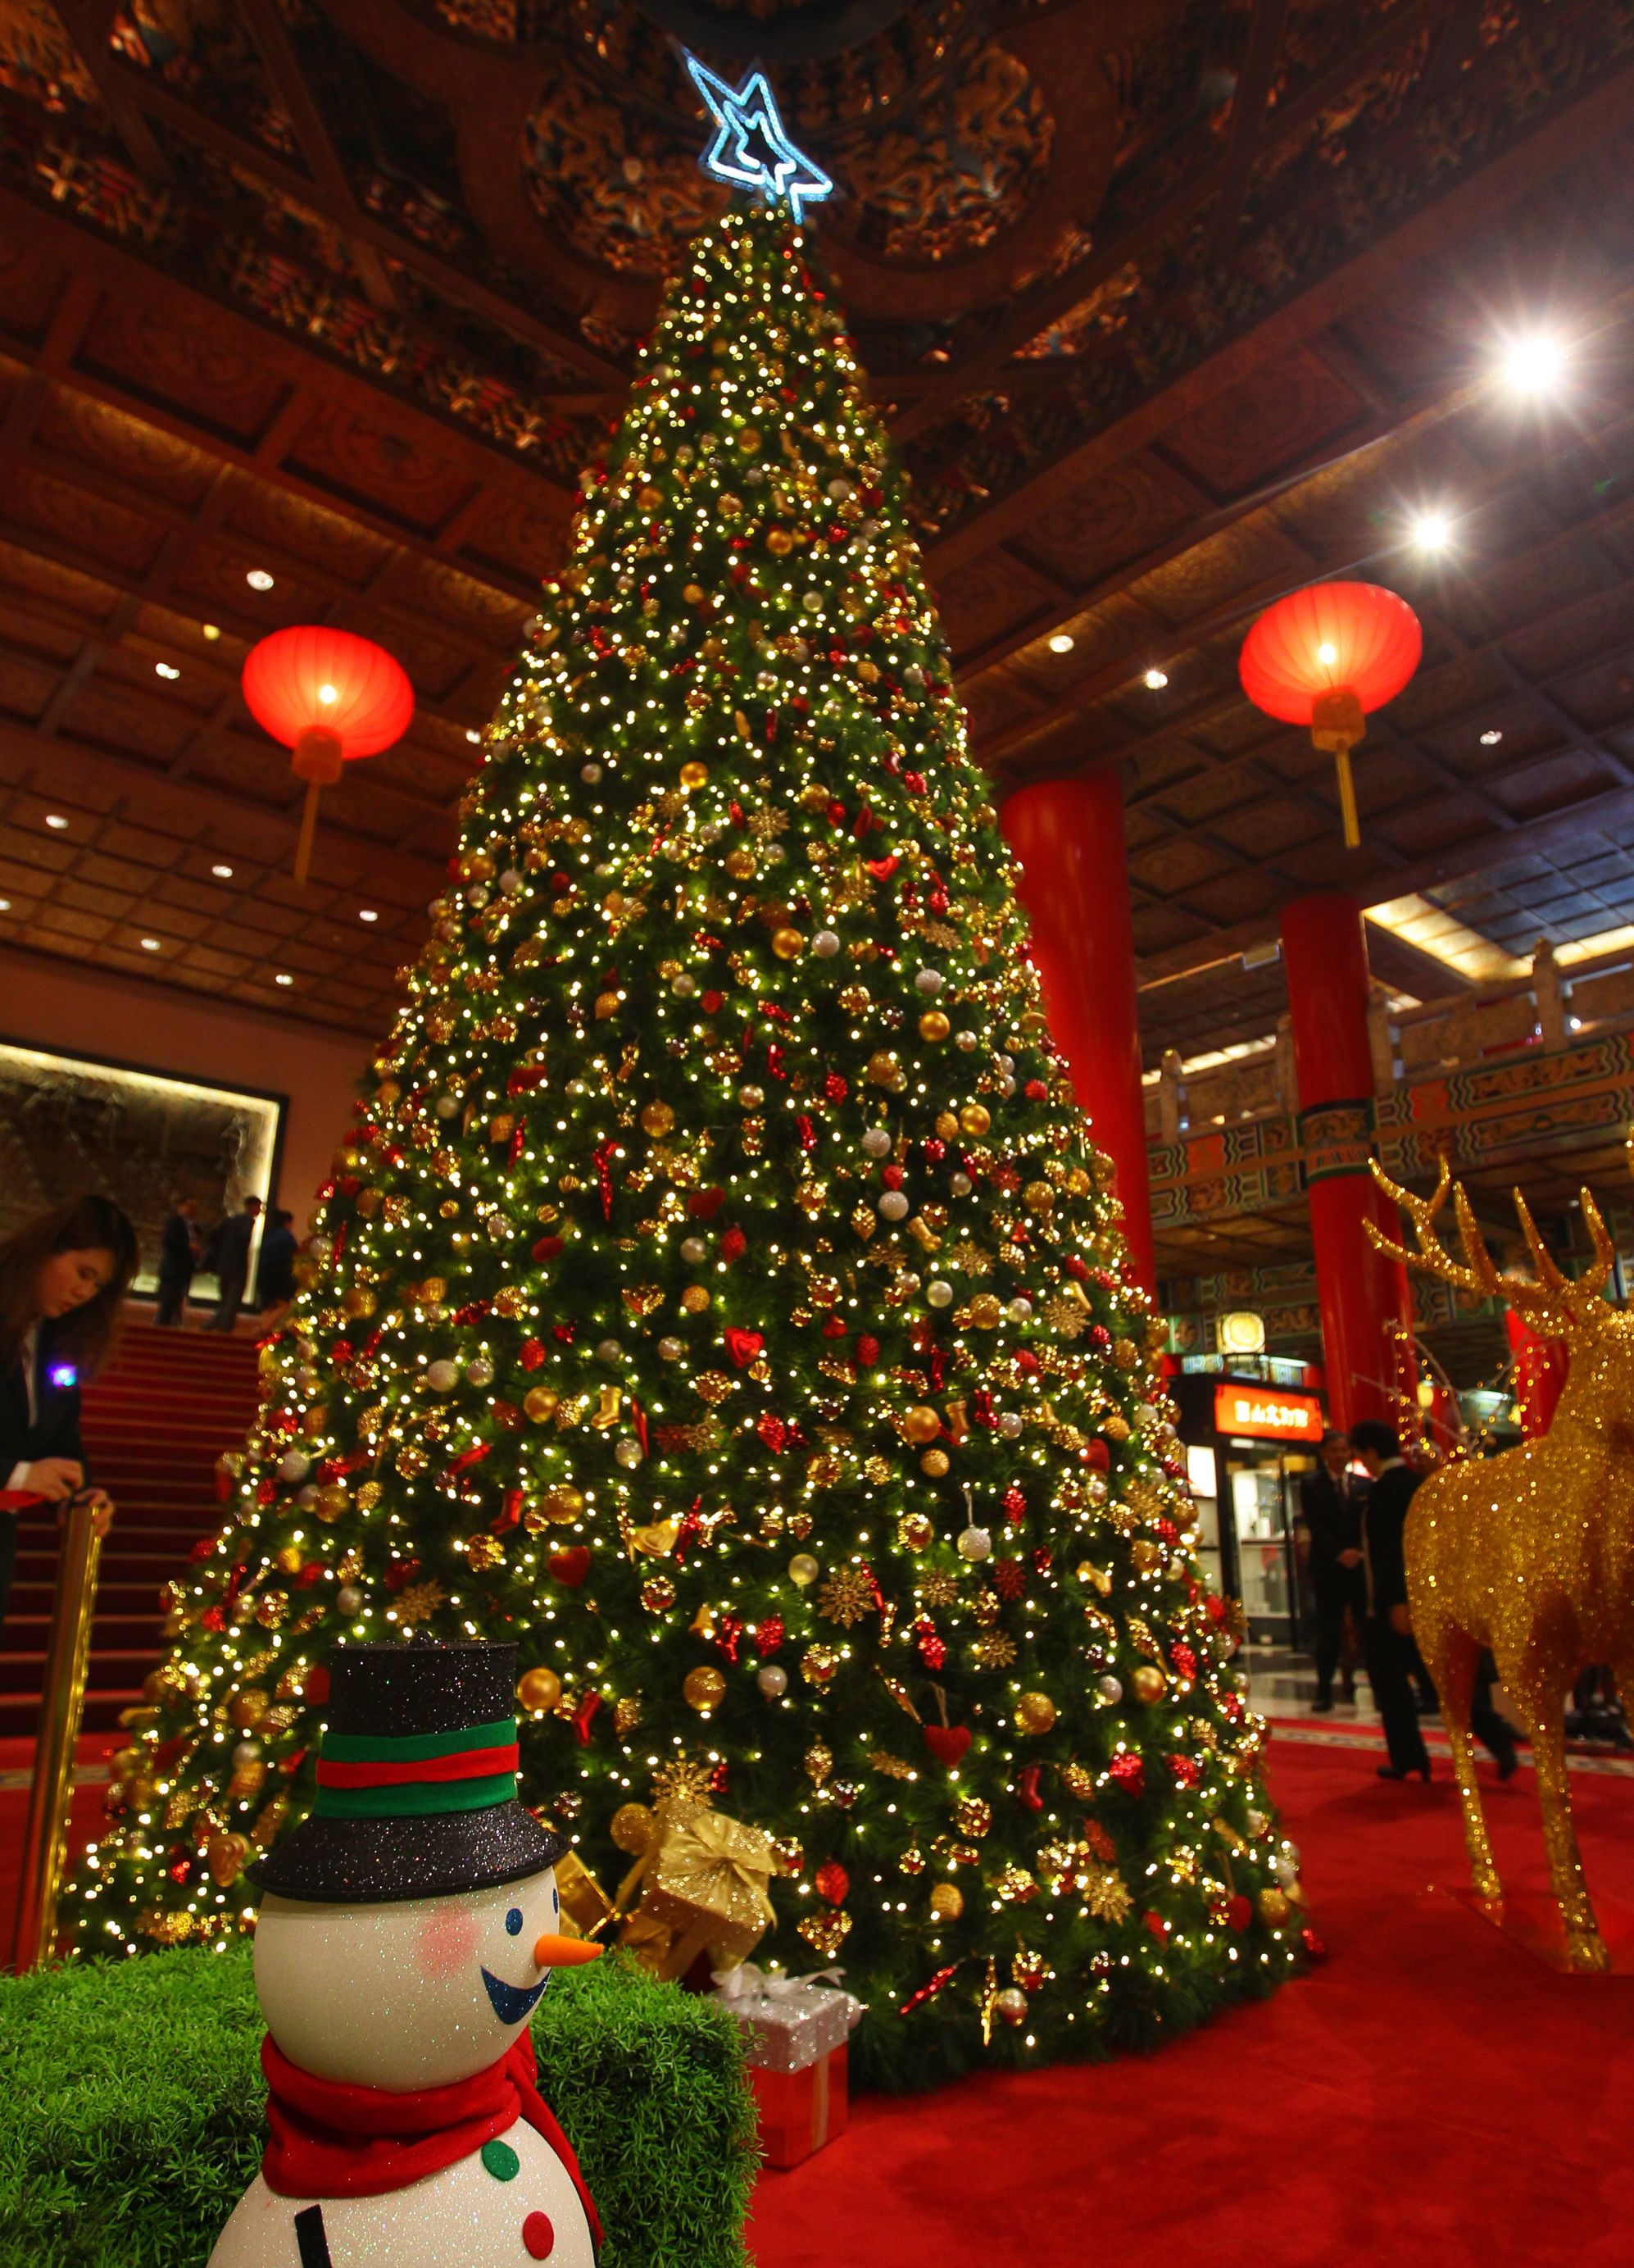 Christmas decorations events around taiwan photo essays for Christmas decorations near me